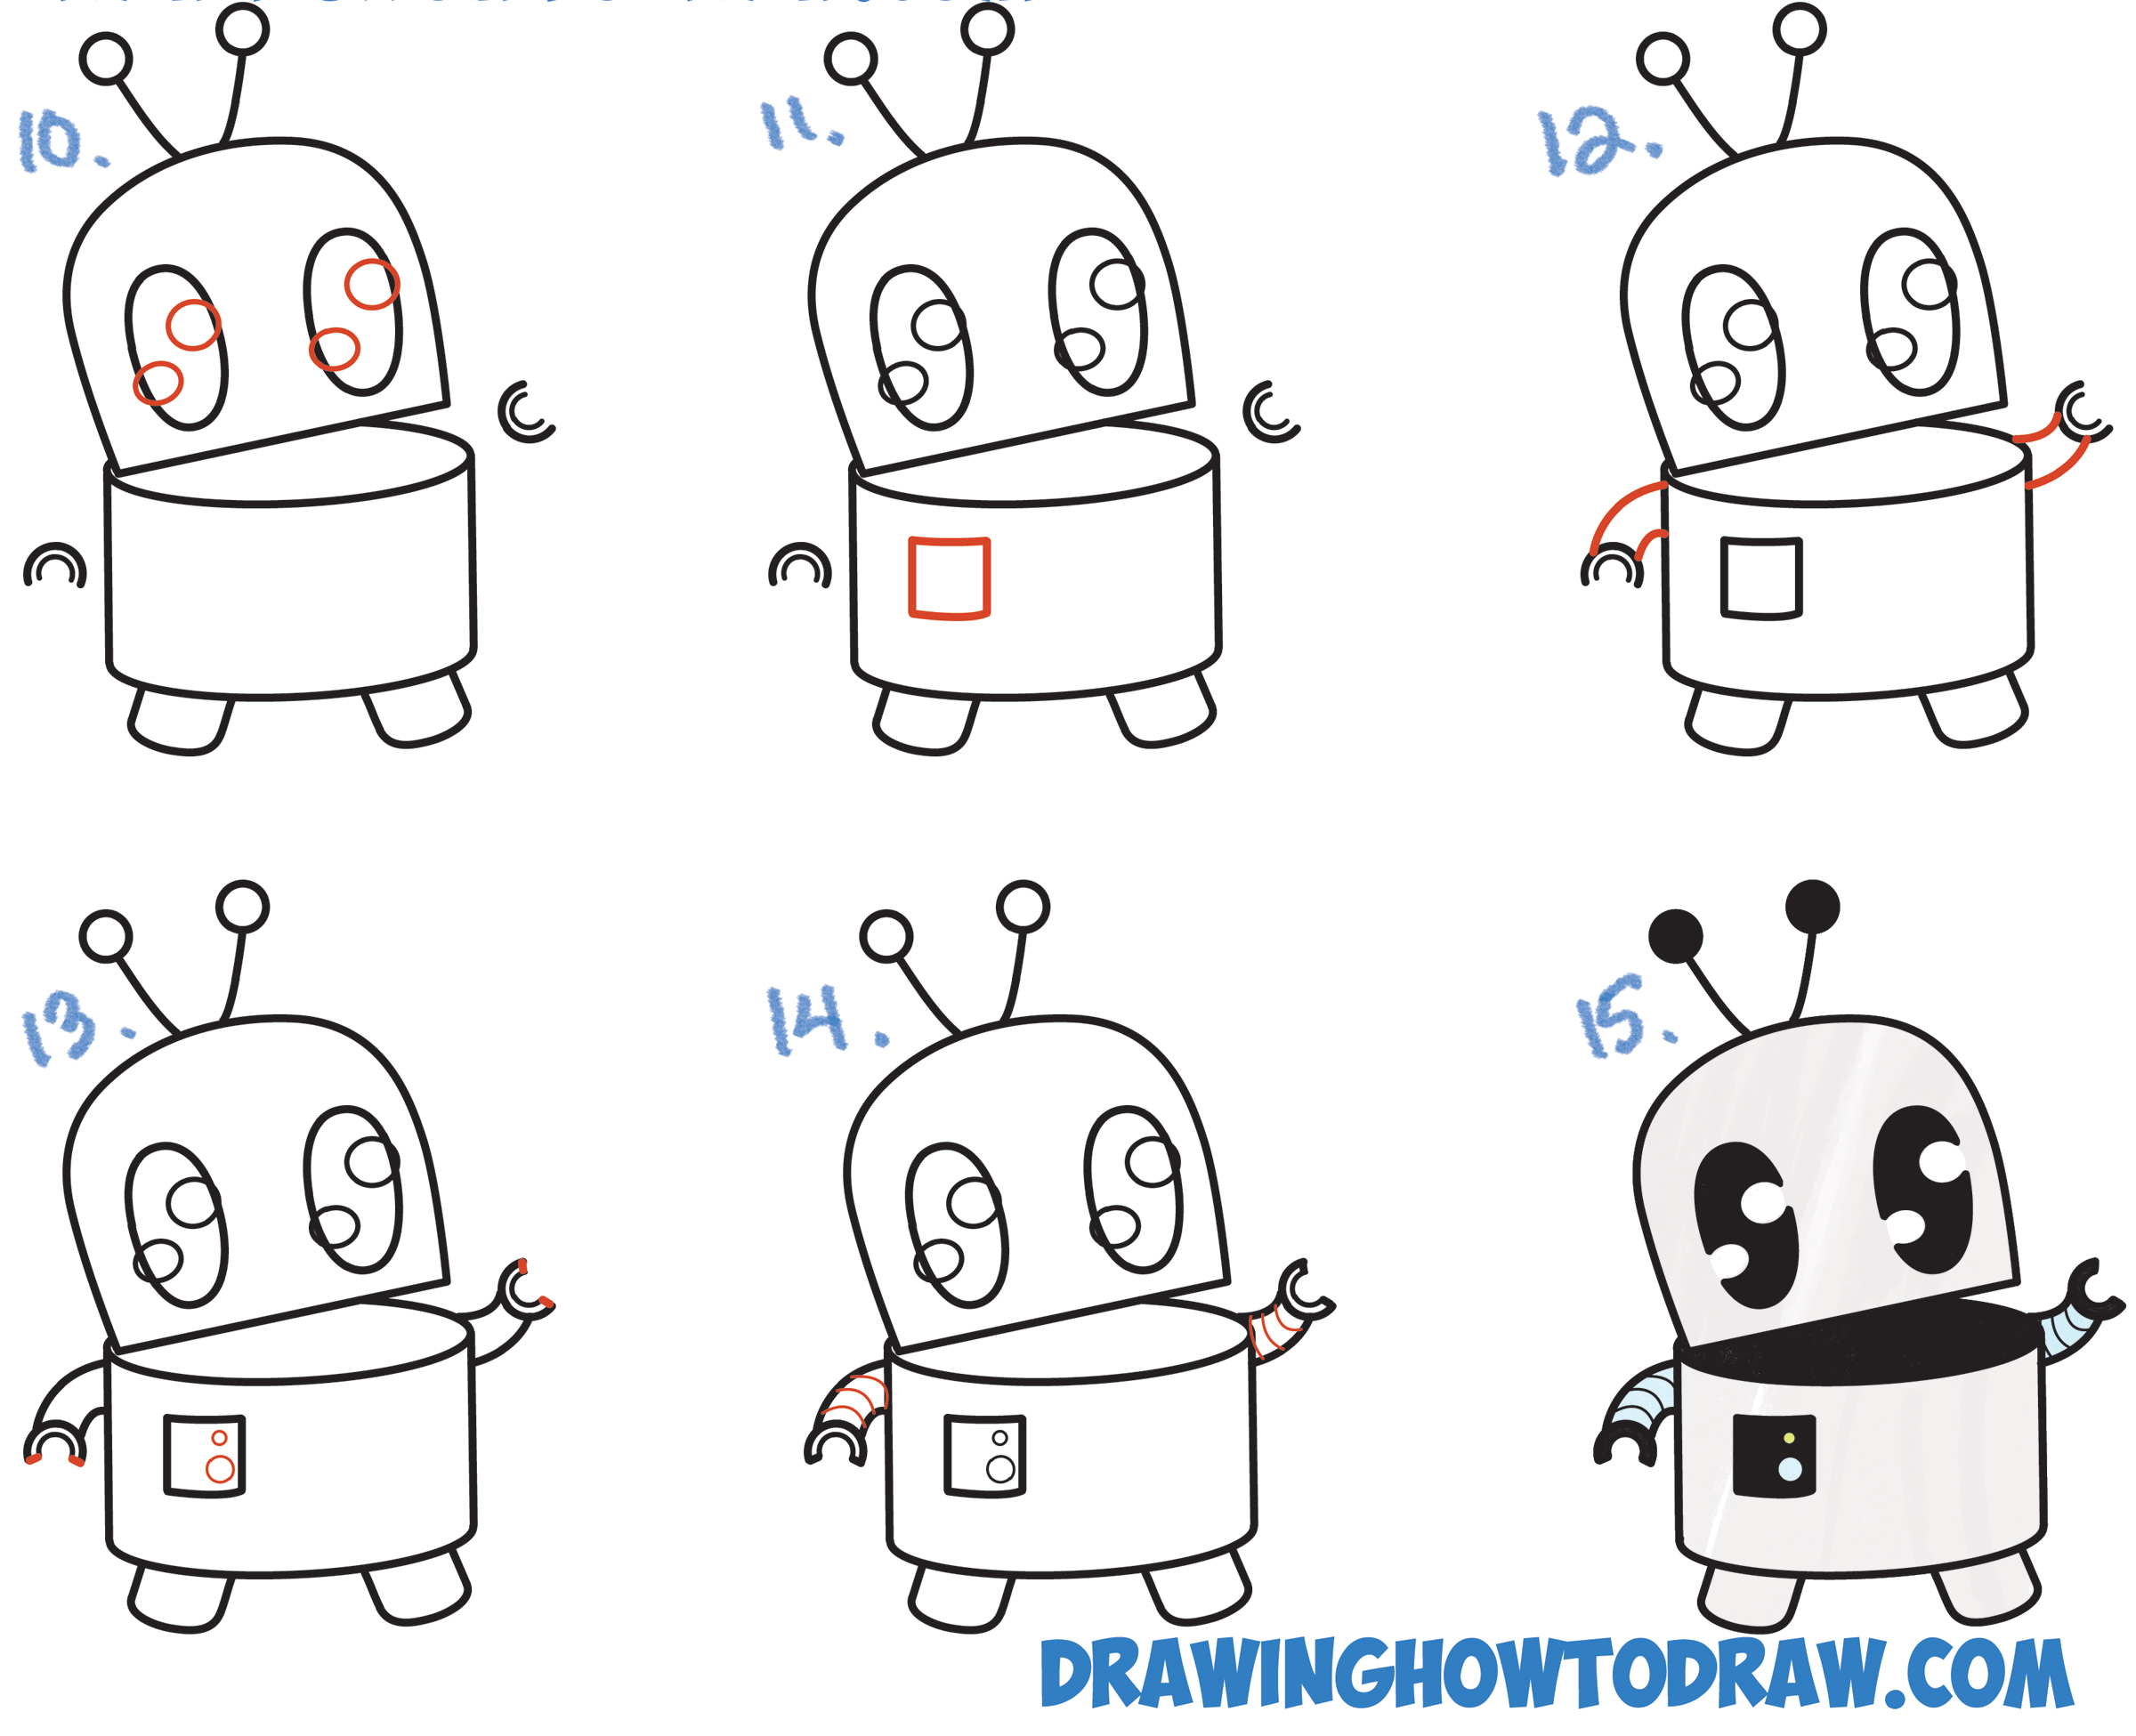 How to Draw a Cute Cartoon Robot Easy Step by Step Drawing